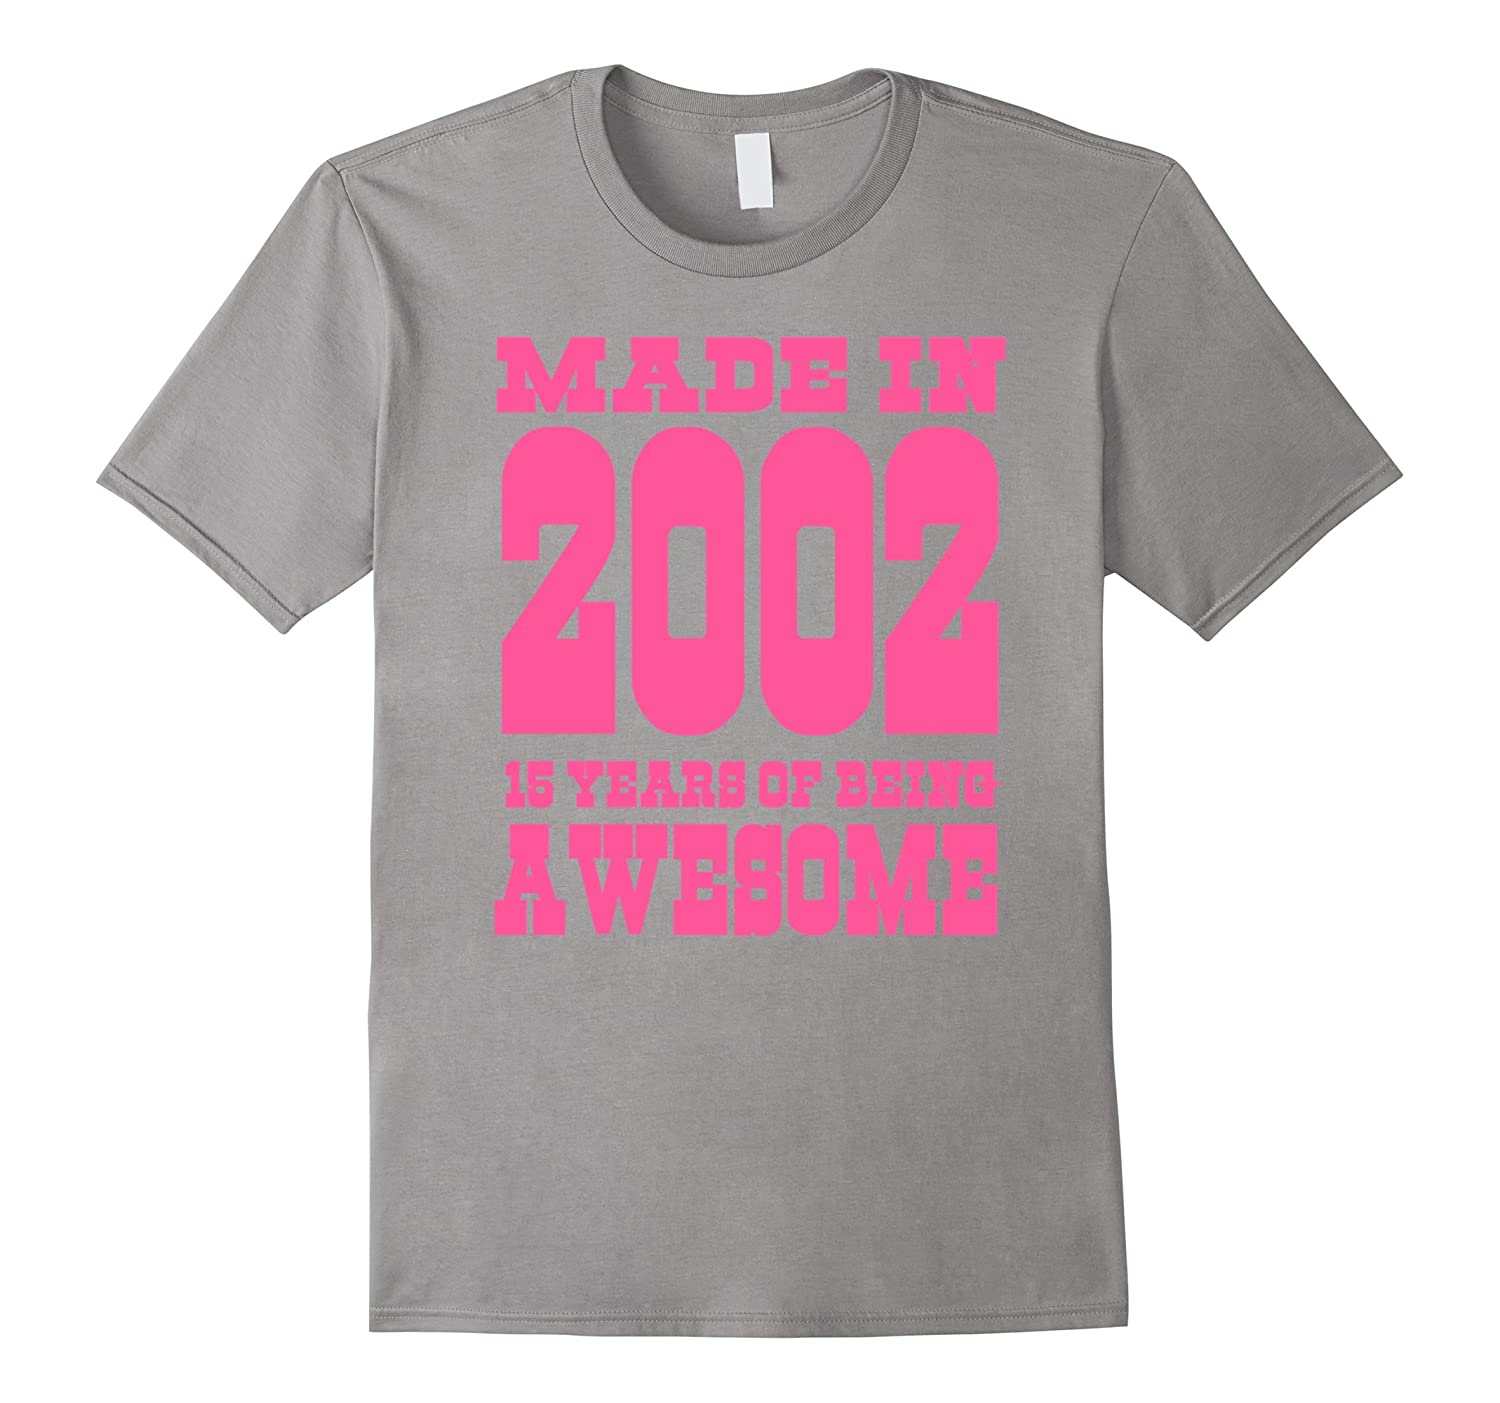 15th Birthday Gift Idea 15 Year Old Boy Girl Shirt 2002 TH